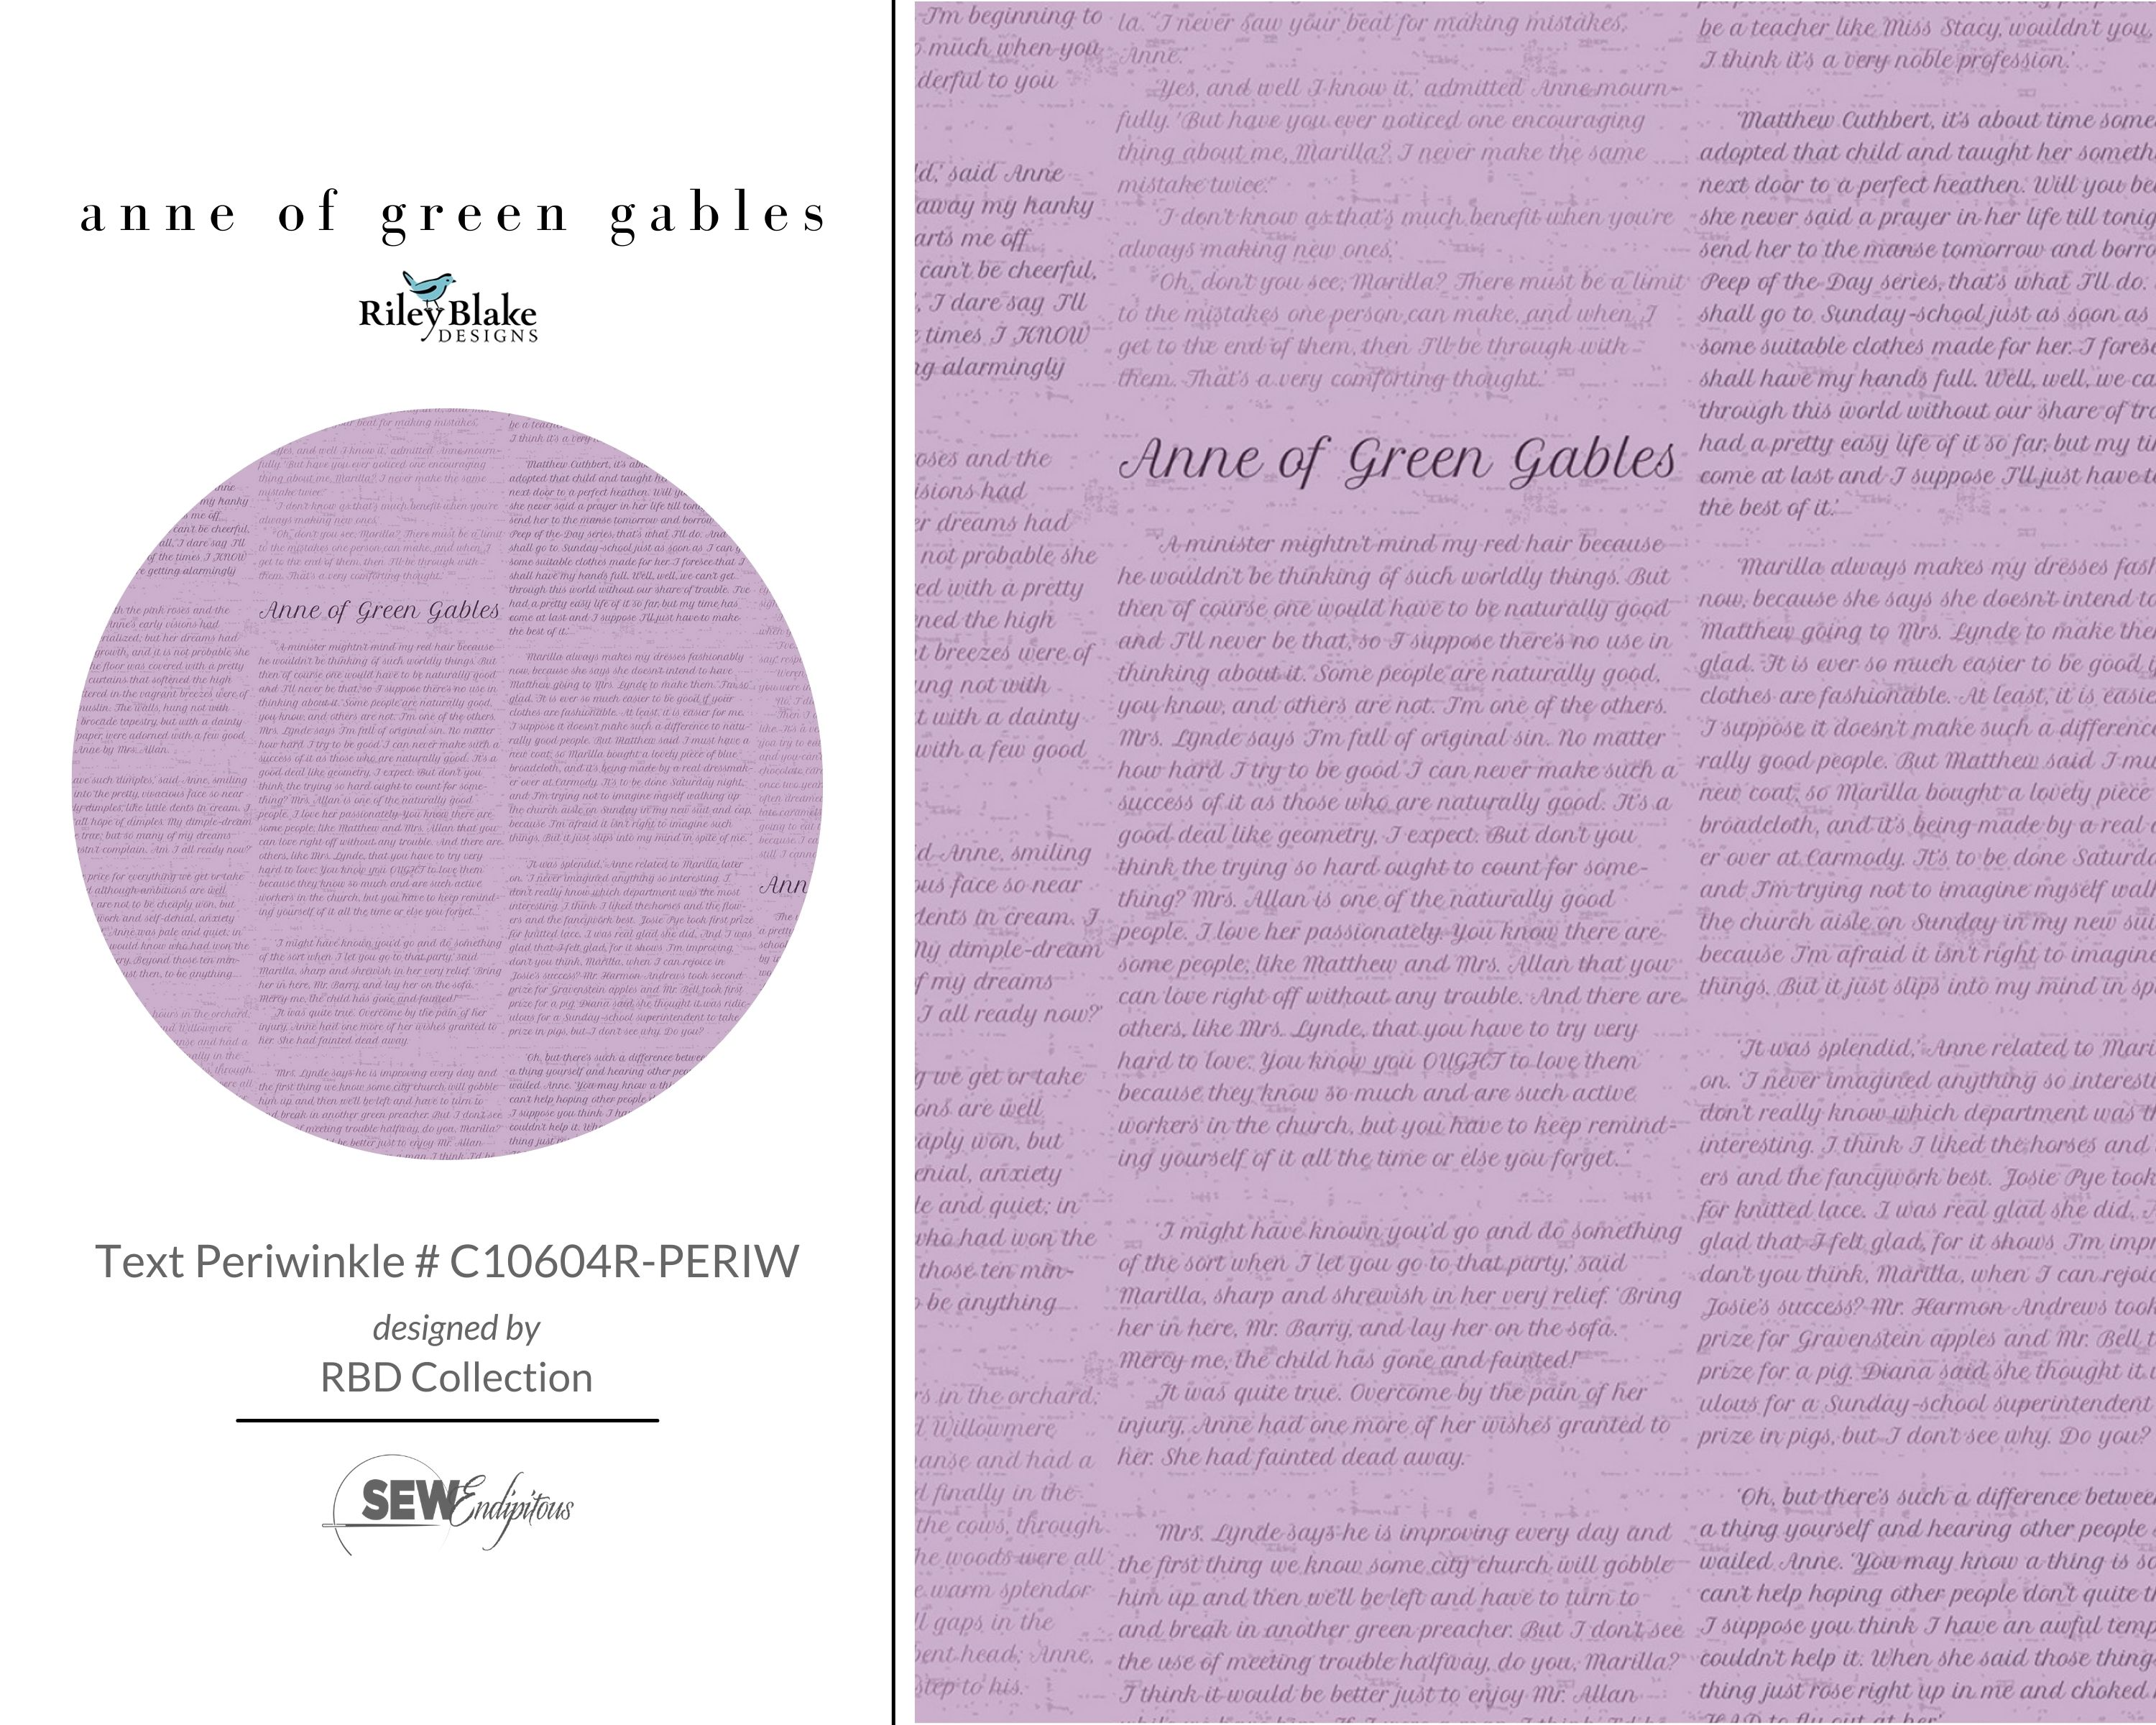 Anne of Green Gables - Text Periwinkle # C10604R-PERIW